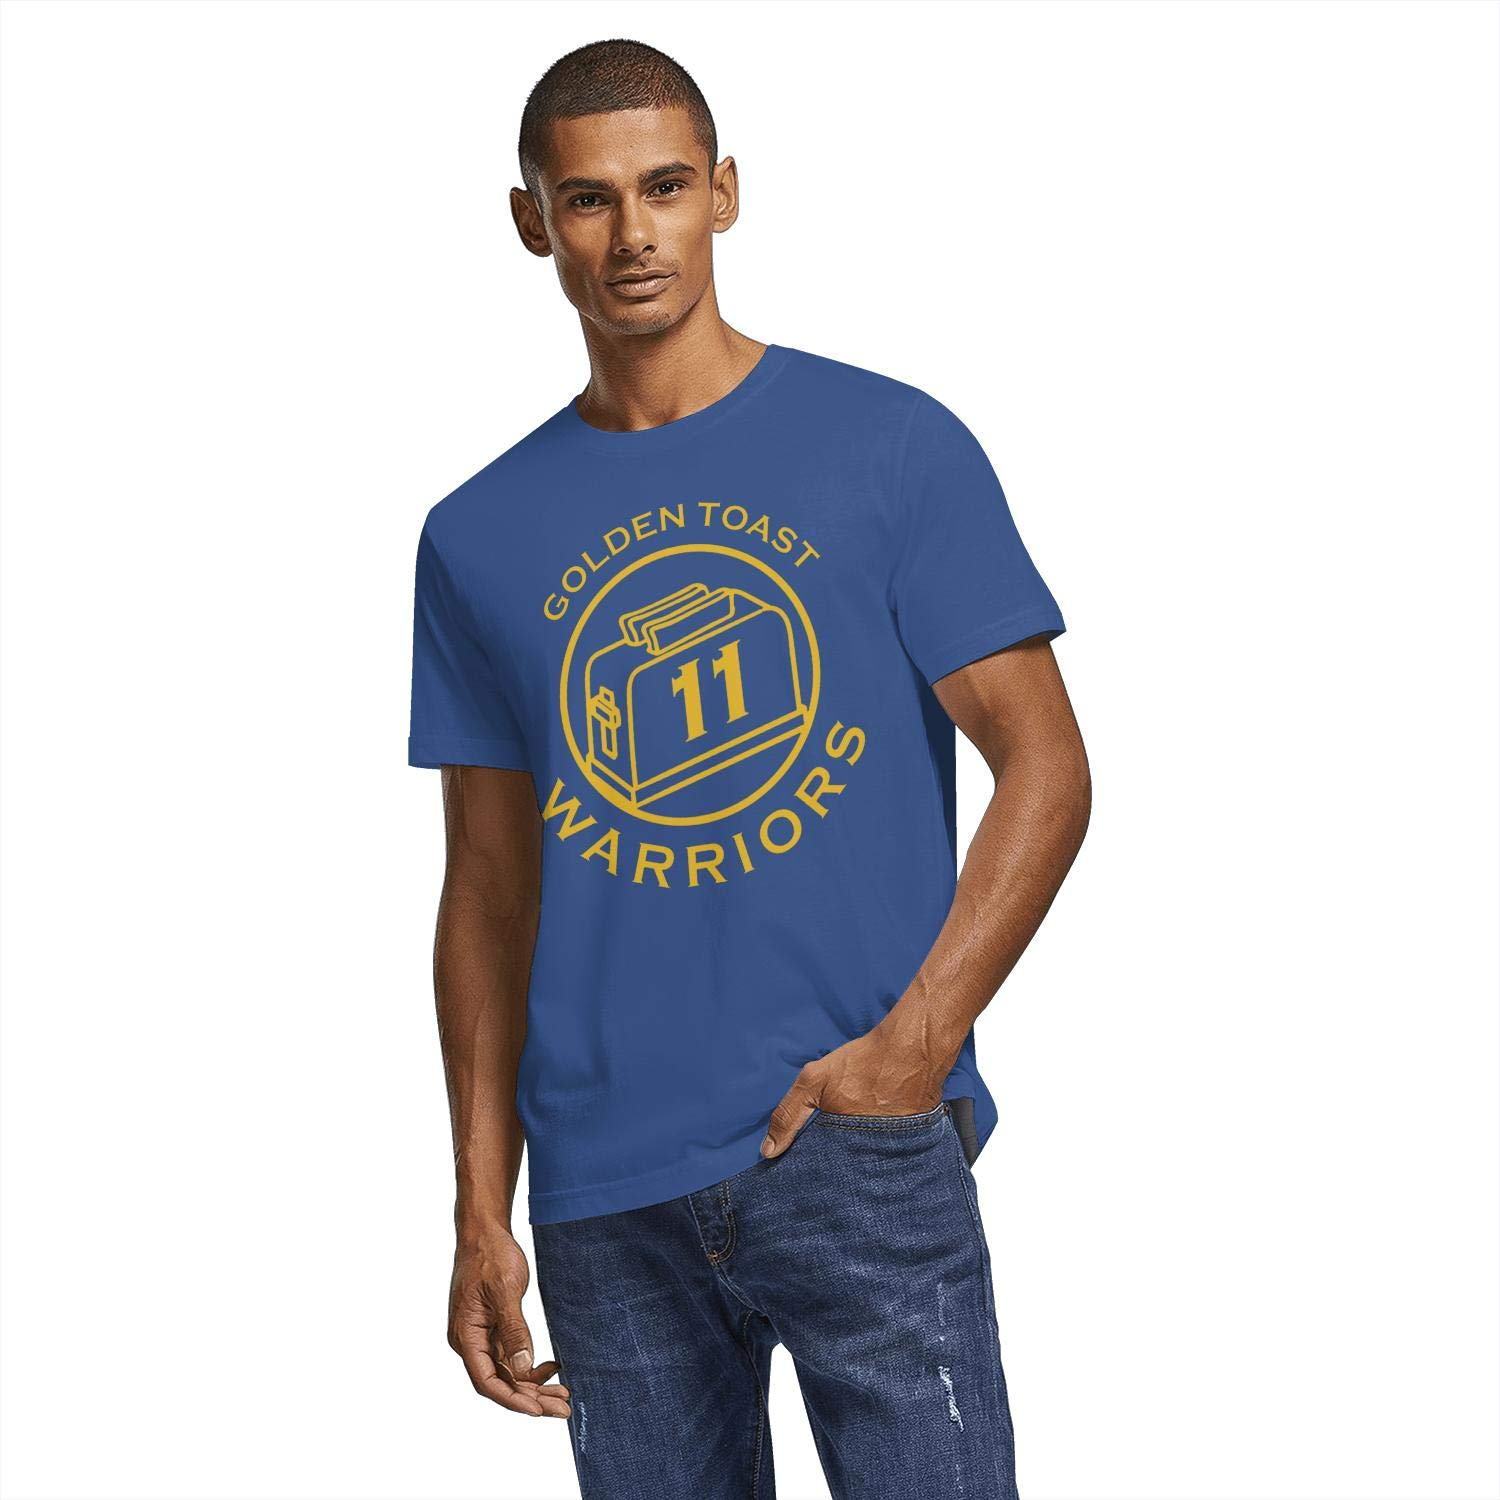 Just Hiker Mens Cool Basketball Players Design Fans Short T-Shirts Athletic Clothes Cotton